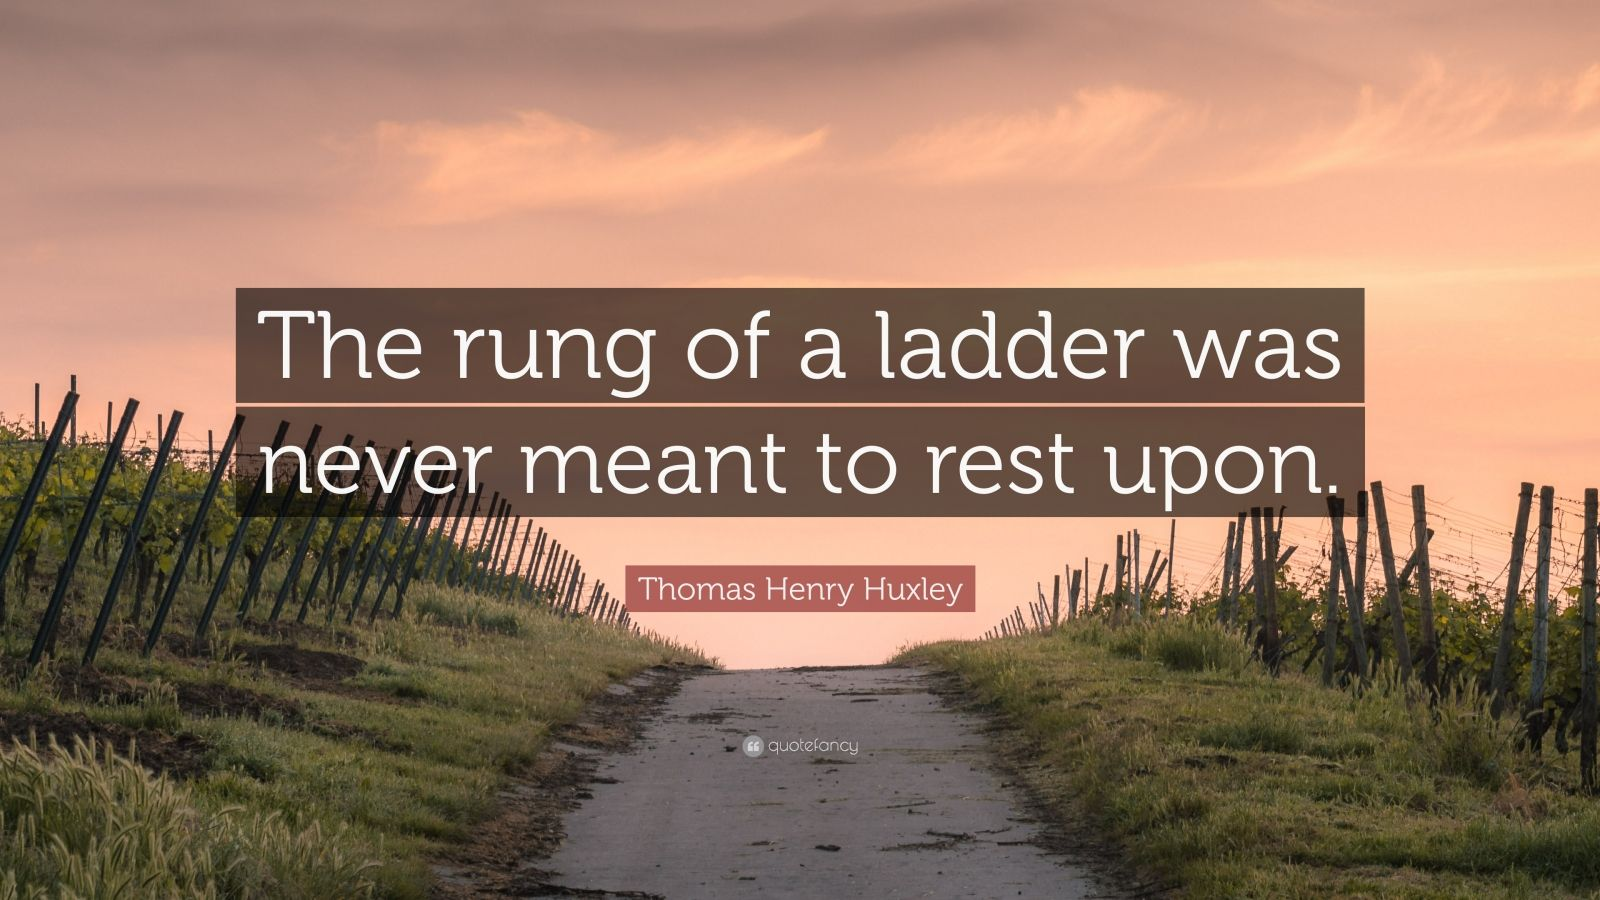 """Thomas Henry Huxley Quote: """"The rung of a ladder was never meant to rest upon."""""""